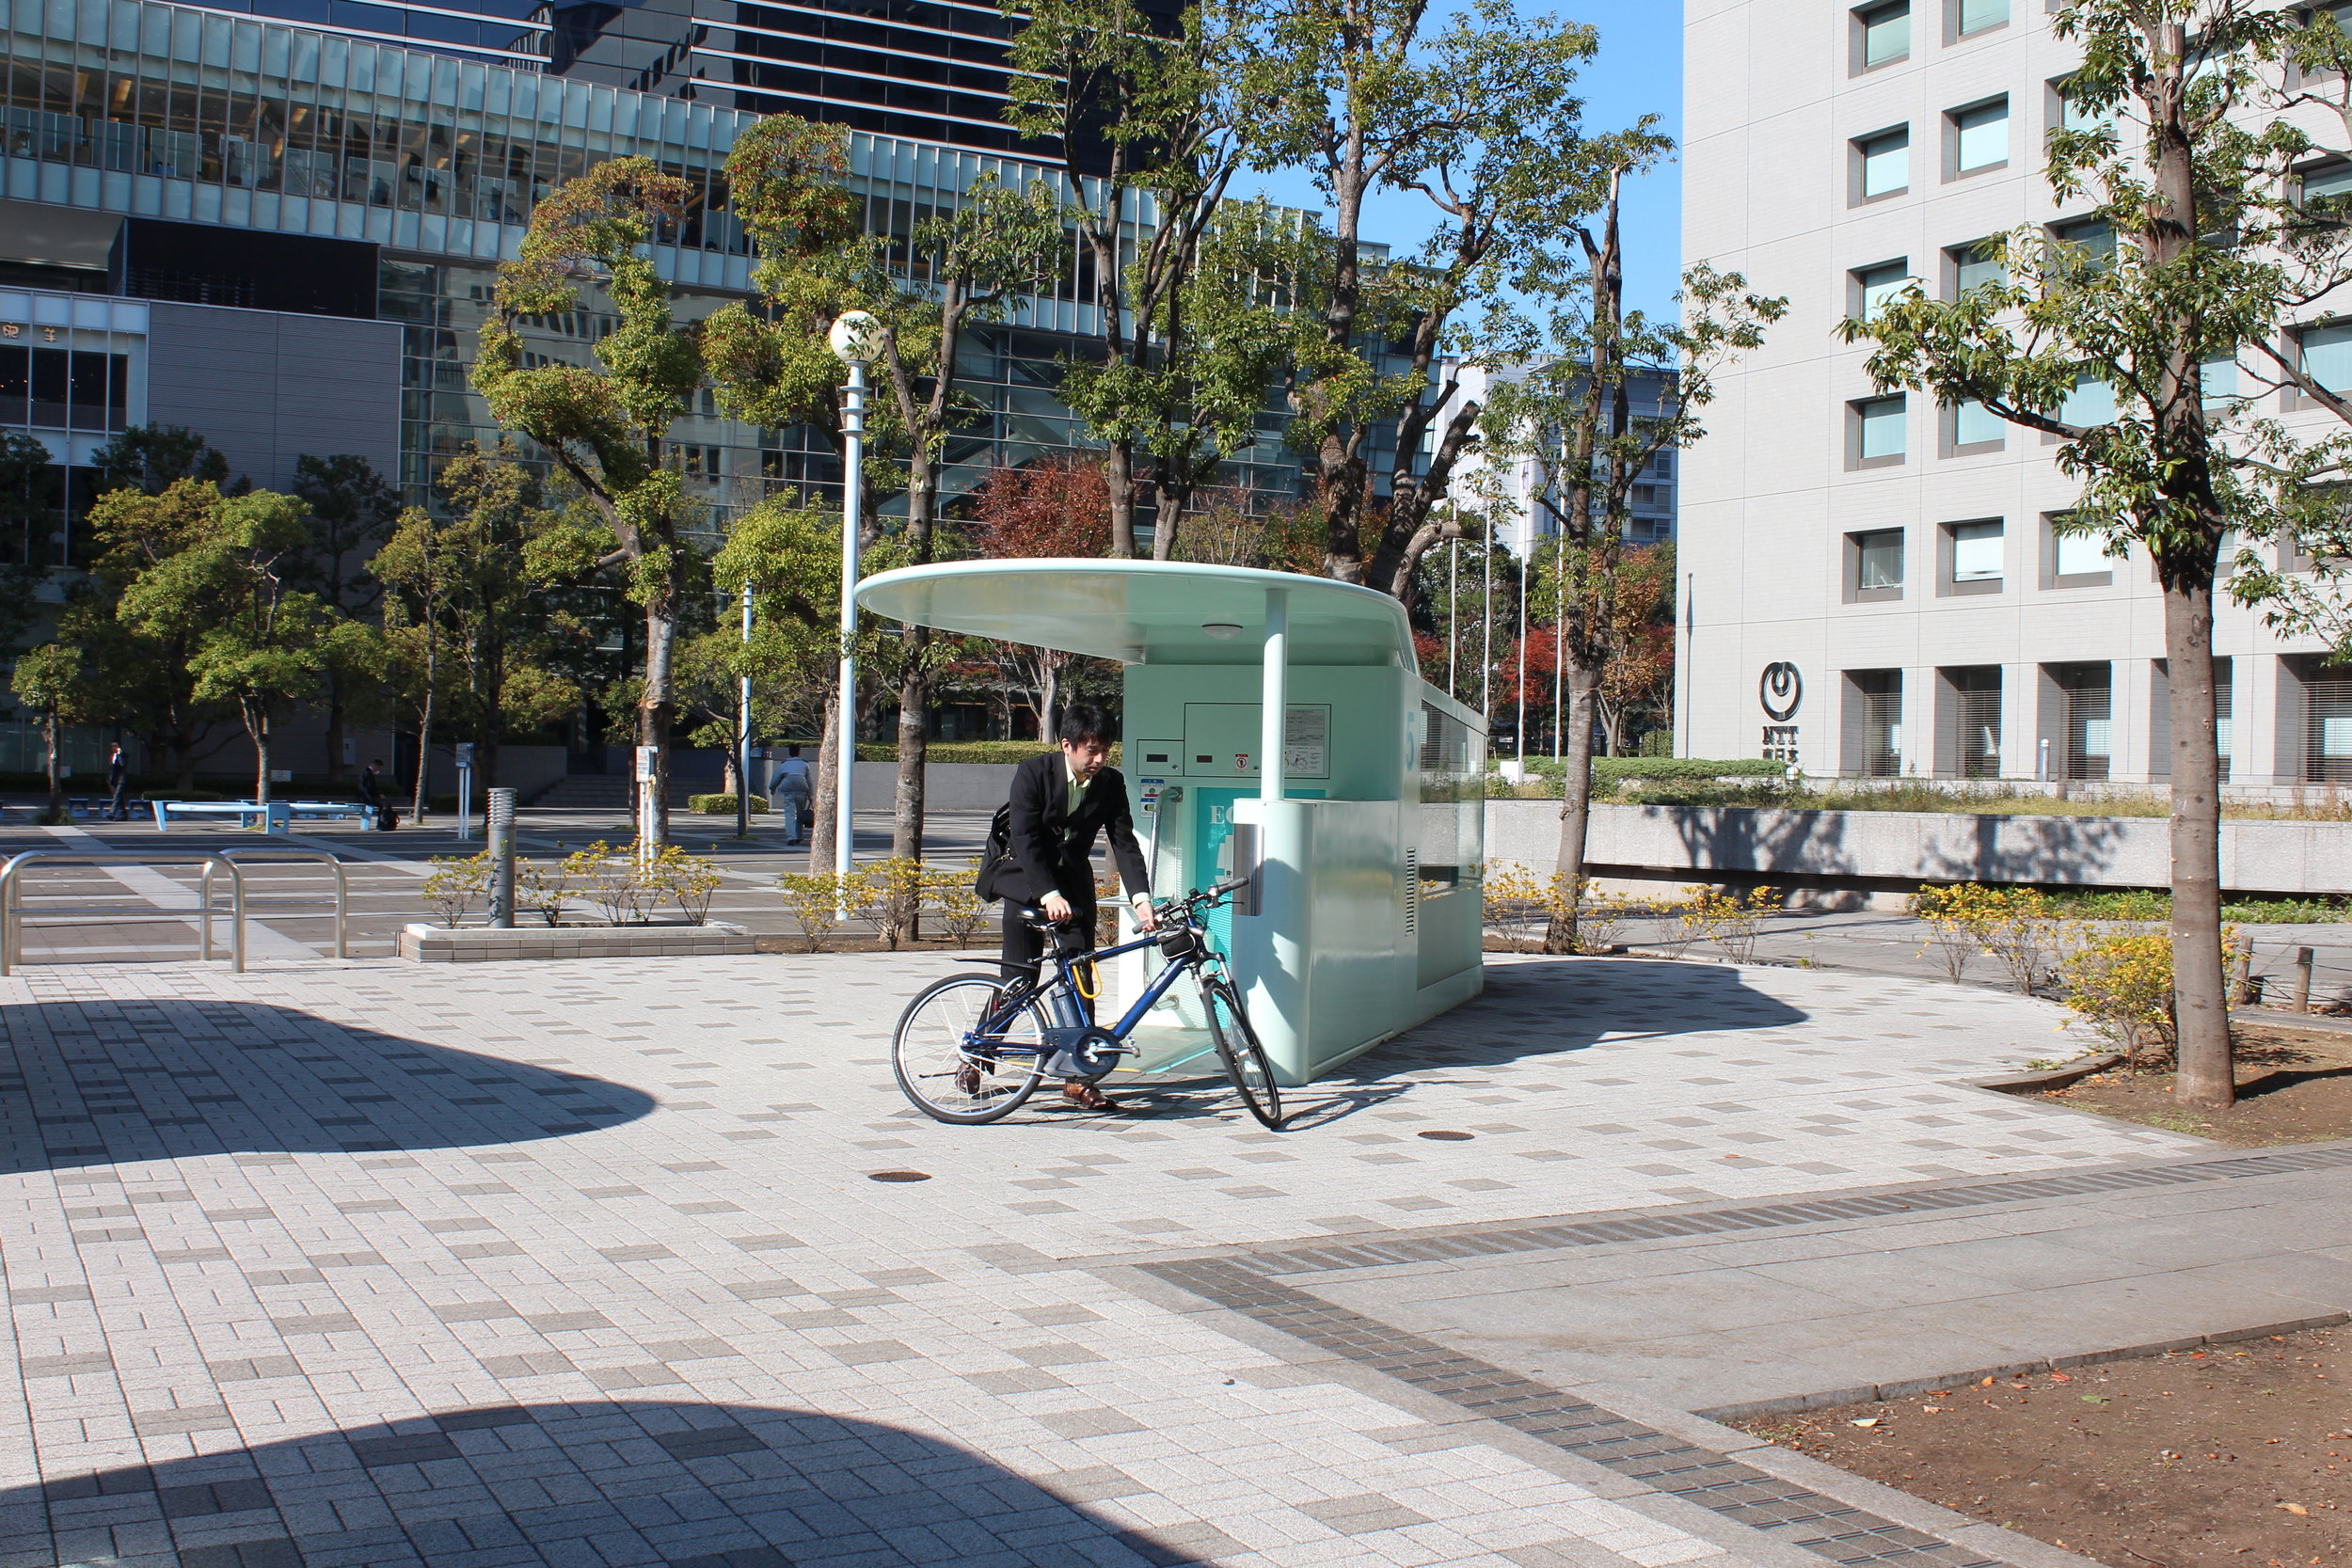 Amazing Tokyo bike parking pulls bike into device and in seconds it's in a secure underground carousel.25.JPG